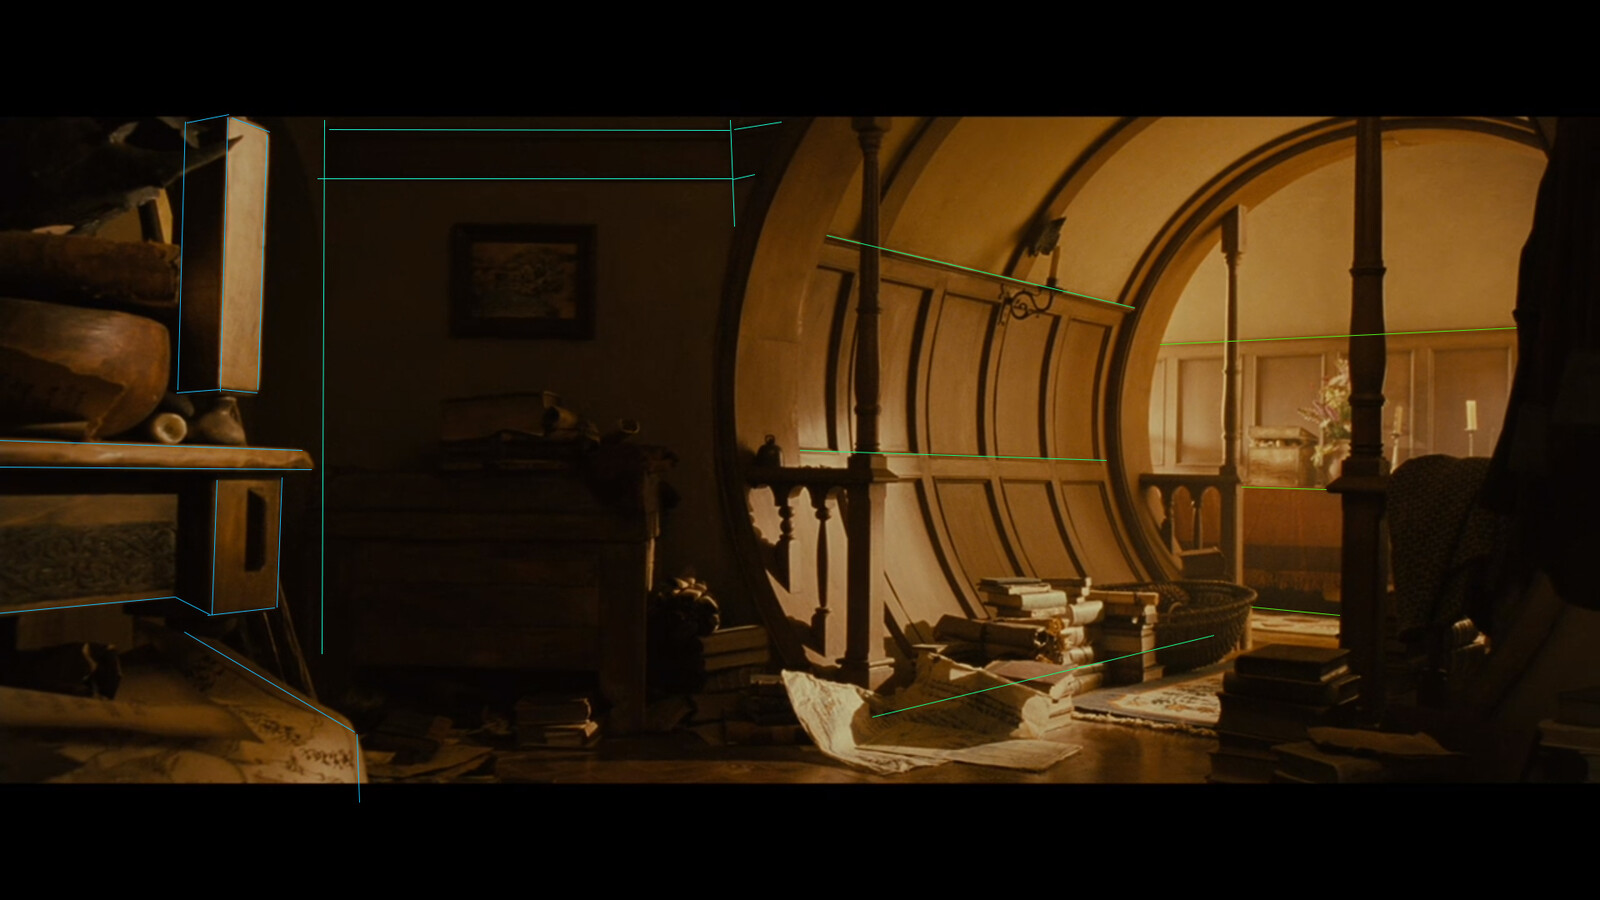 In order to make sure the scene was built to proper perspective, I made some brief perspective drawings and placed this image into the camera to line up the scene accurately.